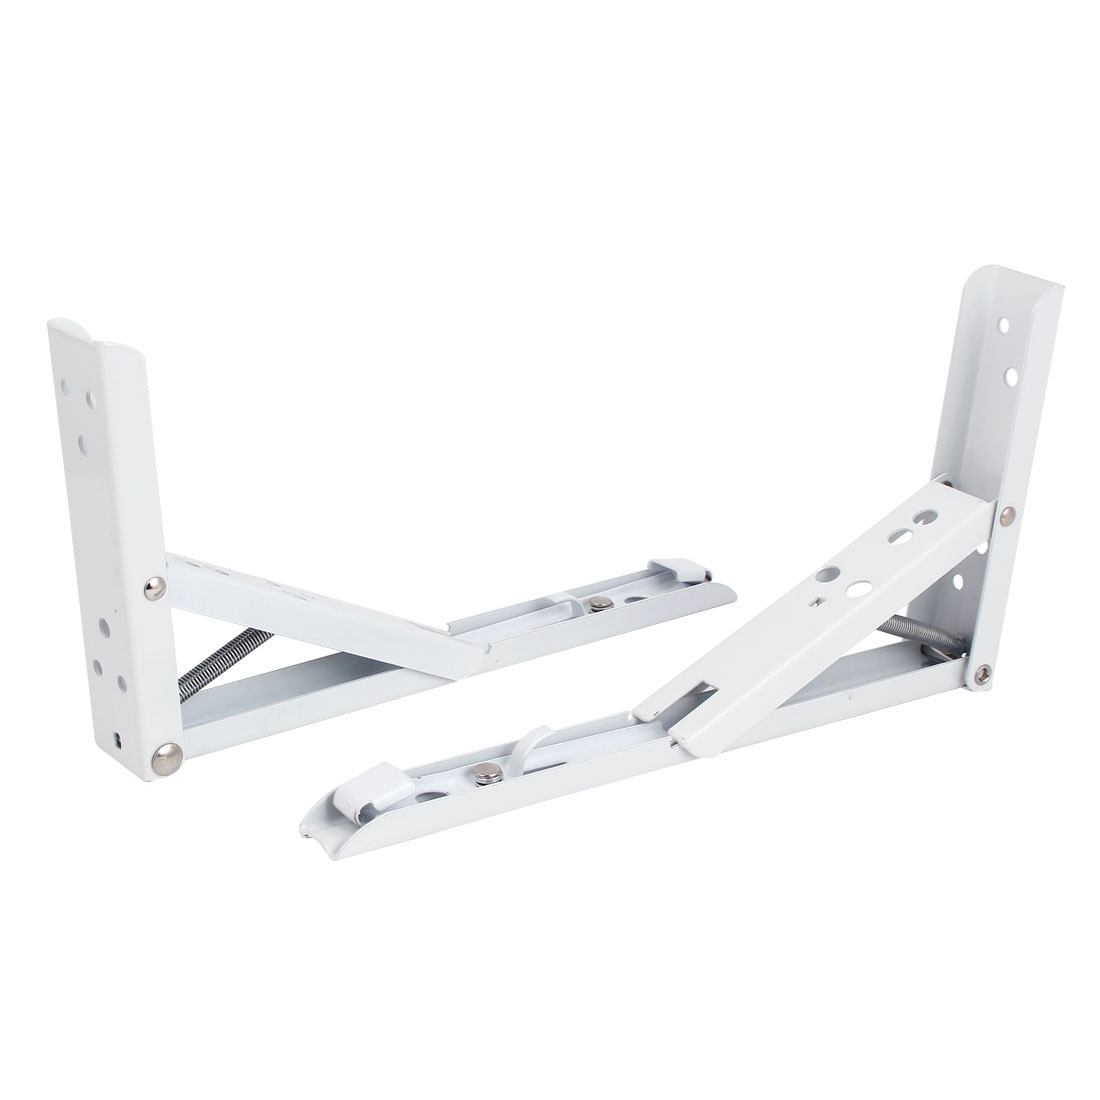 Wall Mounted Metal L Shaped Spring Loaded Folding Support Shelf Bracket White 240mm Length 2pcs